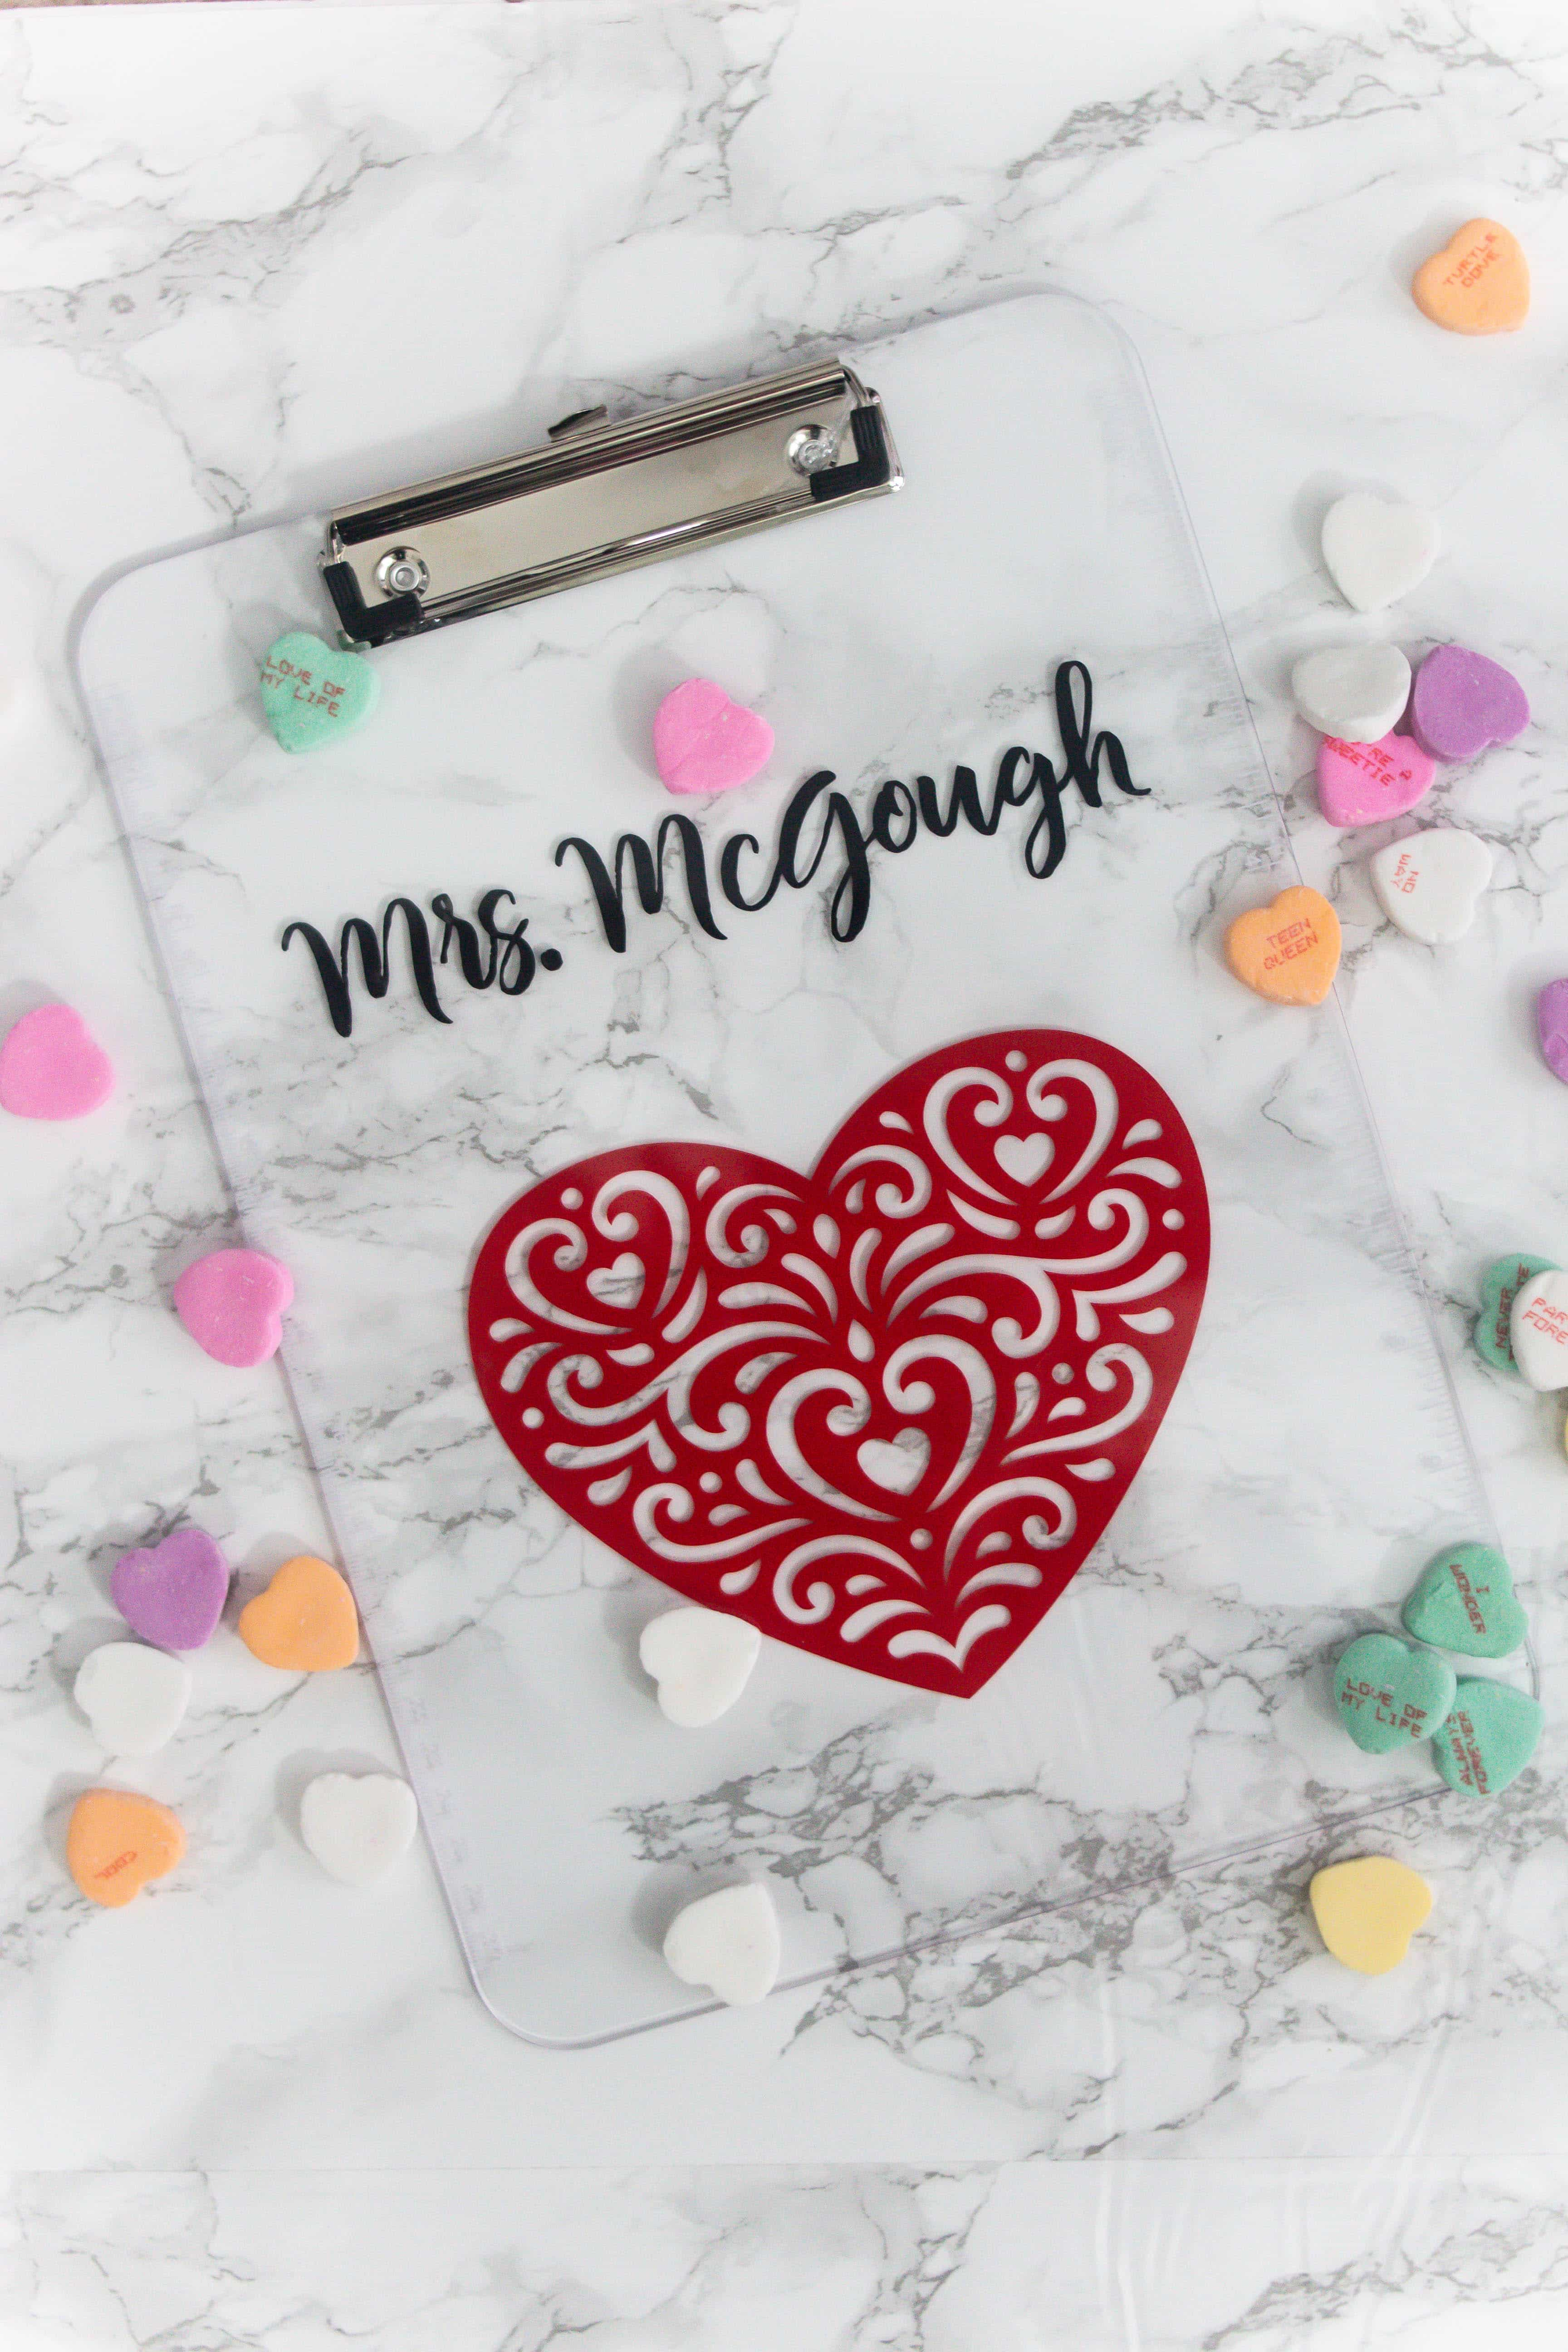 marble background with clear clipboard with heart image and name on the top with candy hearts all around it